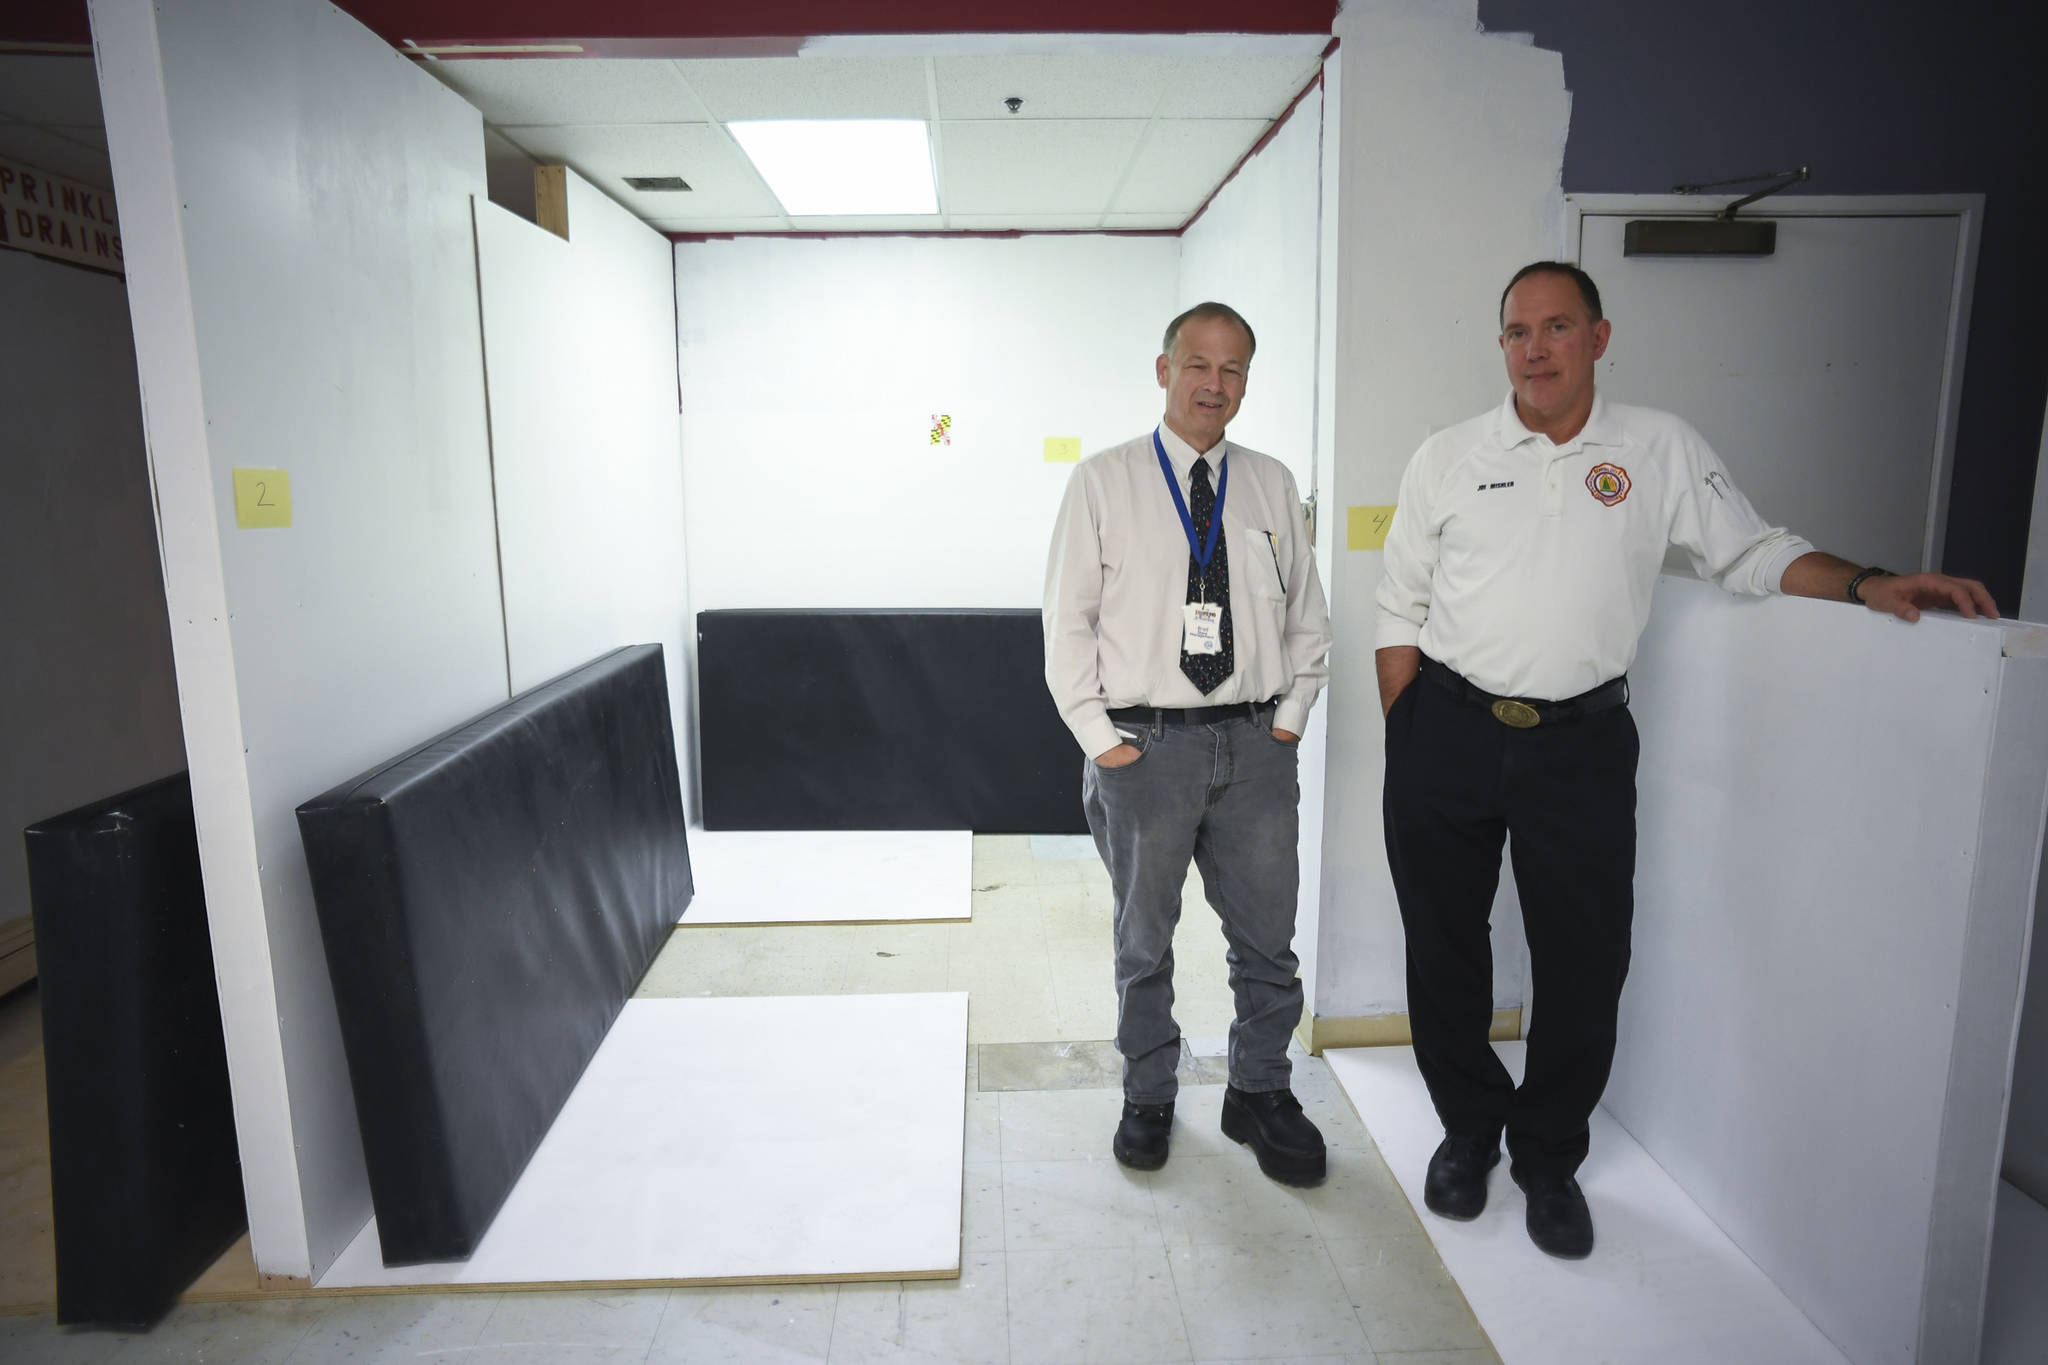 Bradley Perkins, General Manager of St. Vincent de Paul Society Juneau, left, and Joe Mishler, the Emergency Medical Services Training Officer for Capital City Fire/Rescue, stand in a temporary space created as a sleep off center at the Dan Austin Transitional Support Service Center at St. Vincent de Paul on Friday, July 19, 2019. (Michael Penn | Juneau Empire)